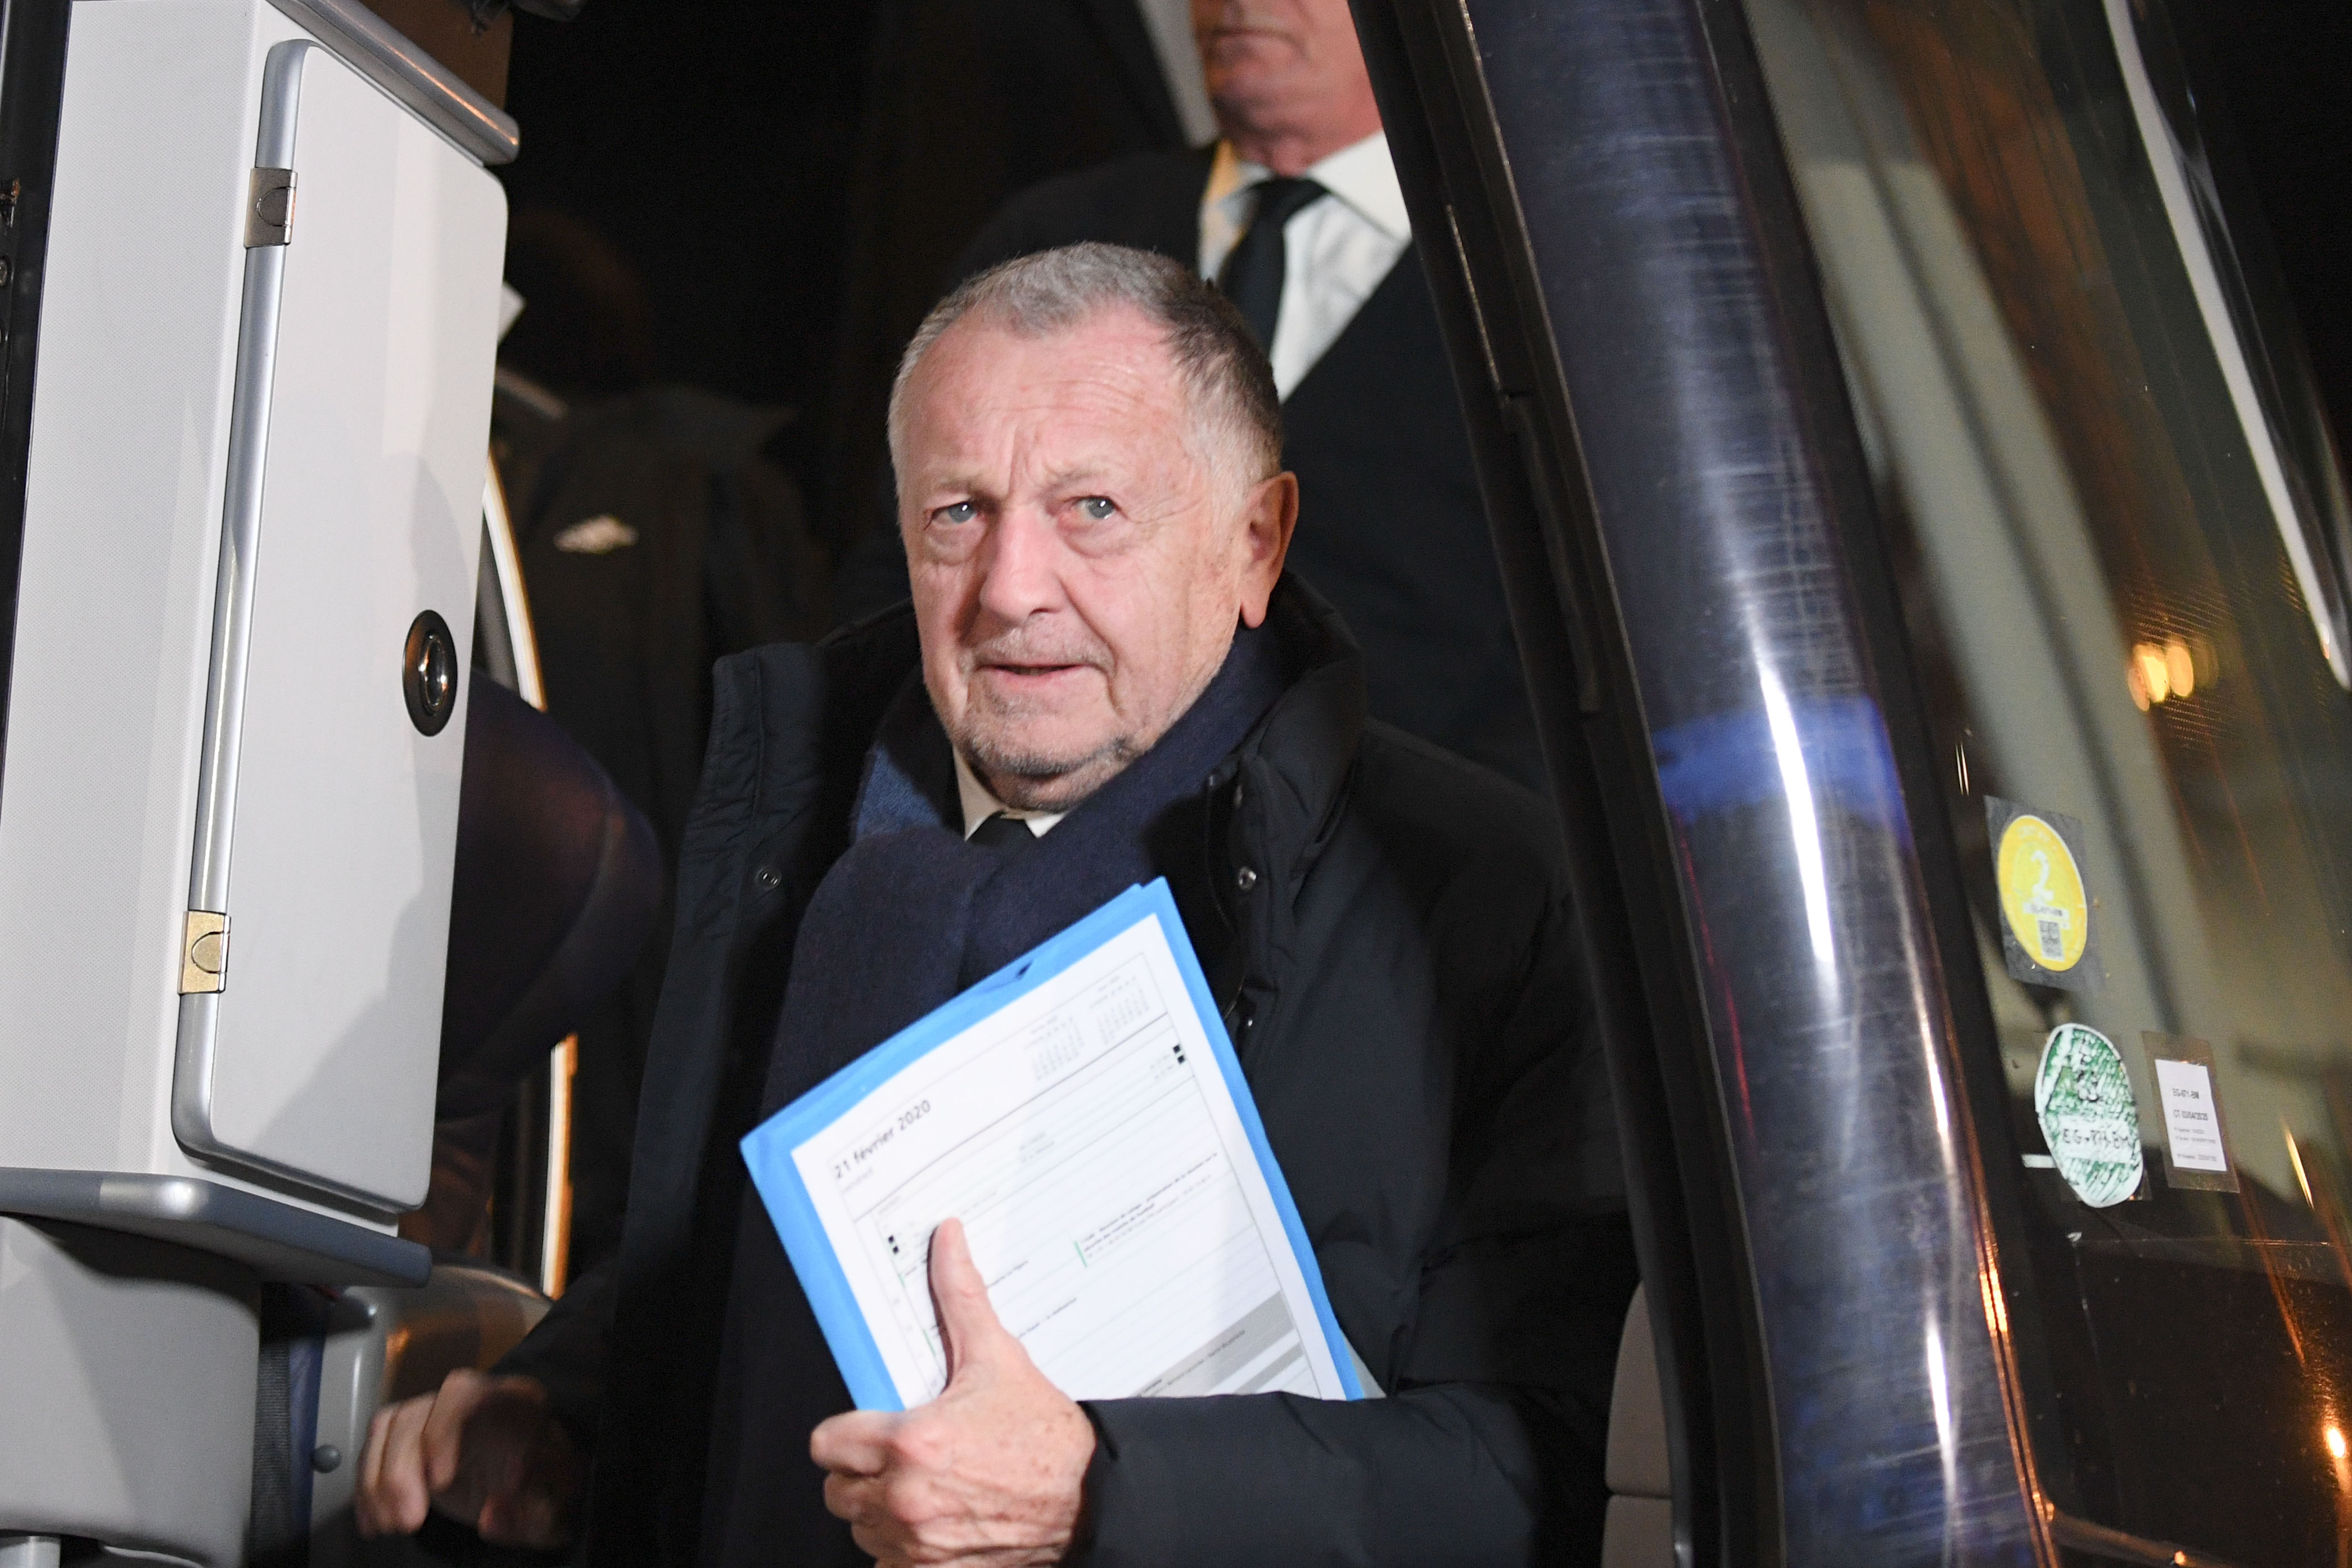 Football - Ligue 1 - Quand Jean-Michel Aulas écrit une lettre à la ministre des Sports